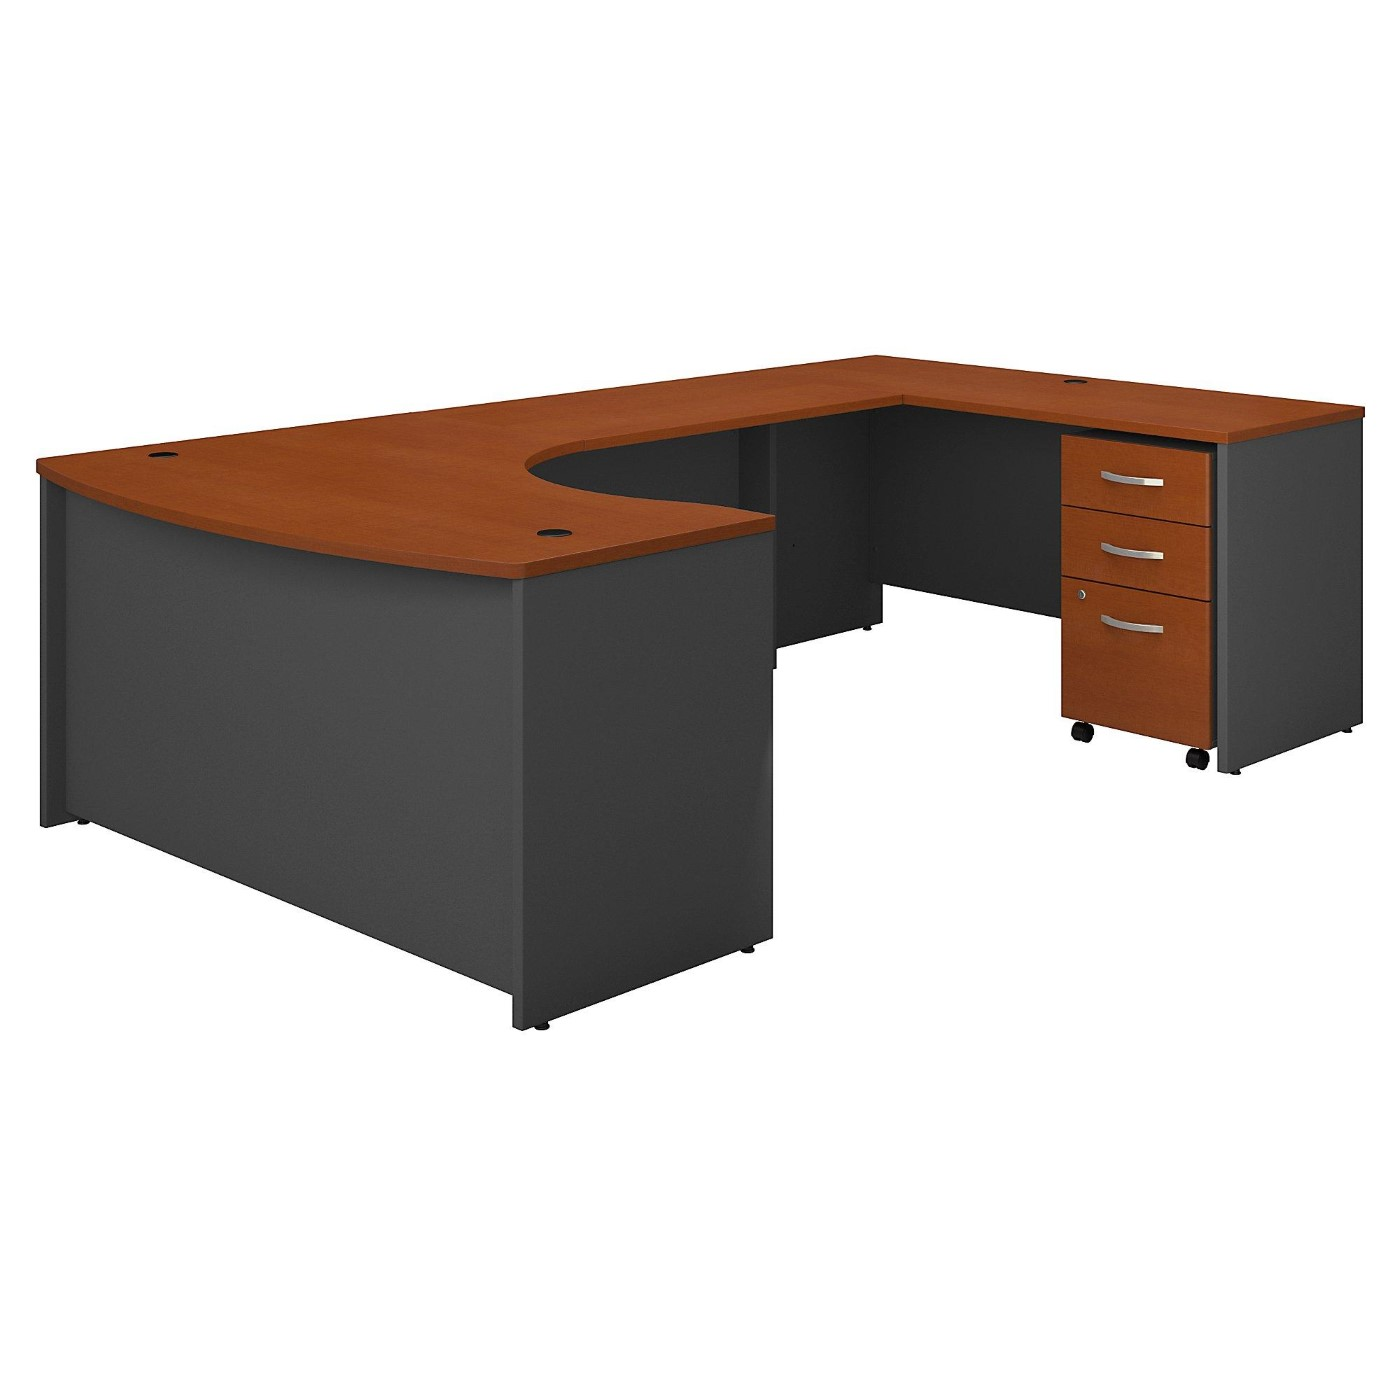 </b></font><b>BUSH BUSINESS FURNITURE SERIES C 60W LEFT HANDED BOW FRONT U SHAPED DESK WITH MOBILE FILE CABINET. FREE SHIPPING</b></font>  VIDEO BELOW. </b></font></b>